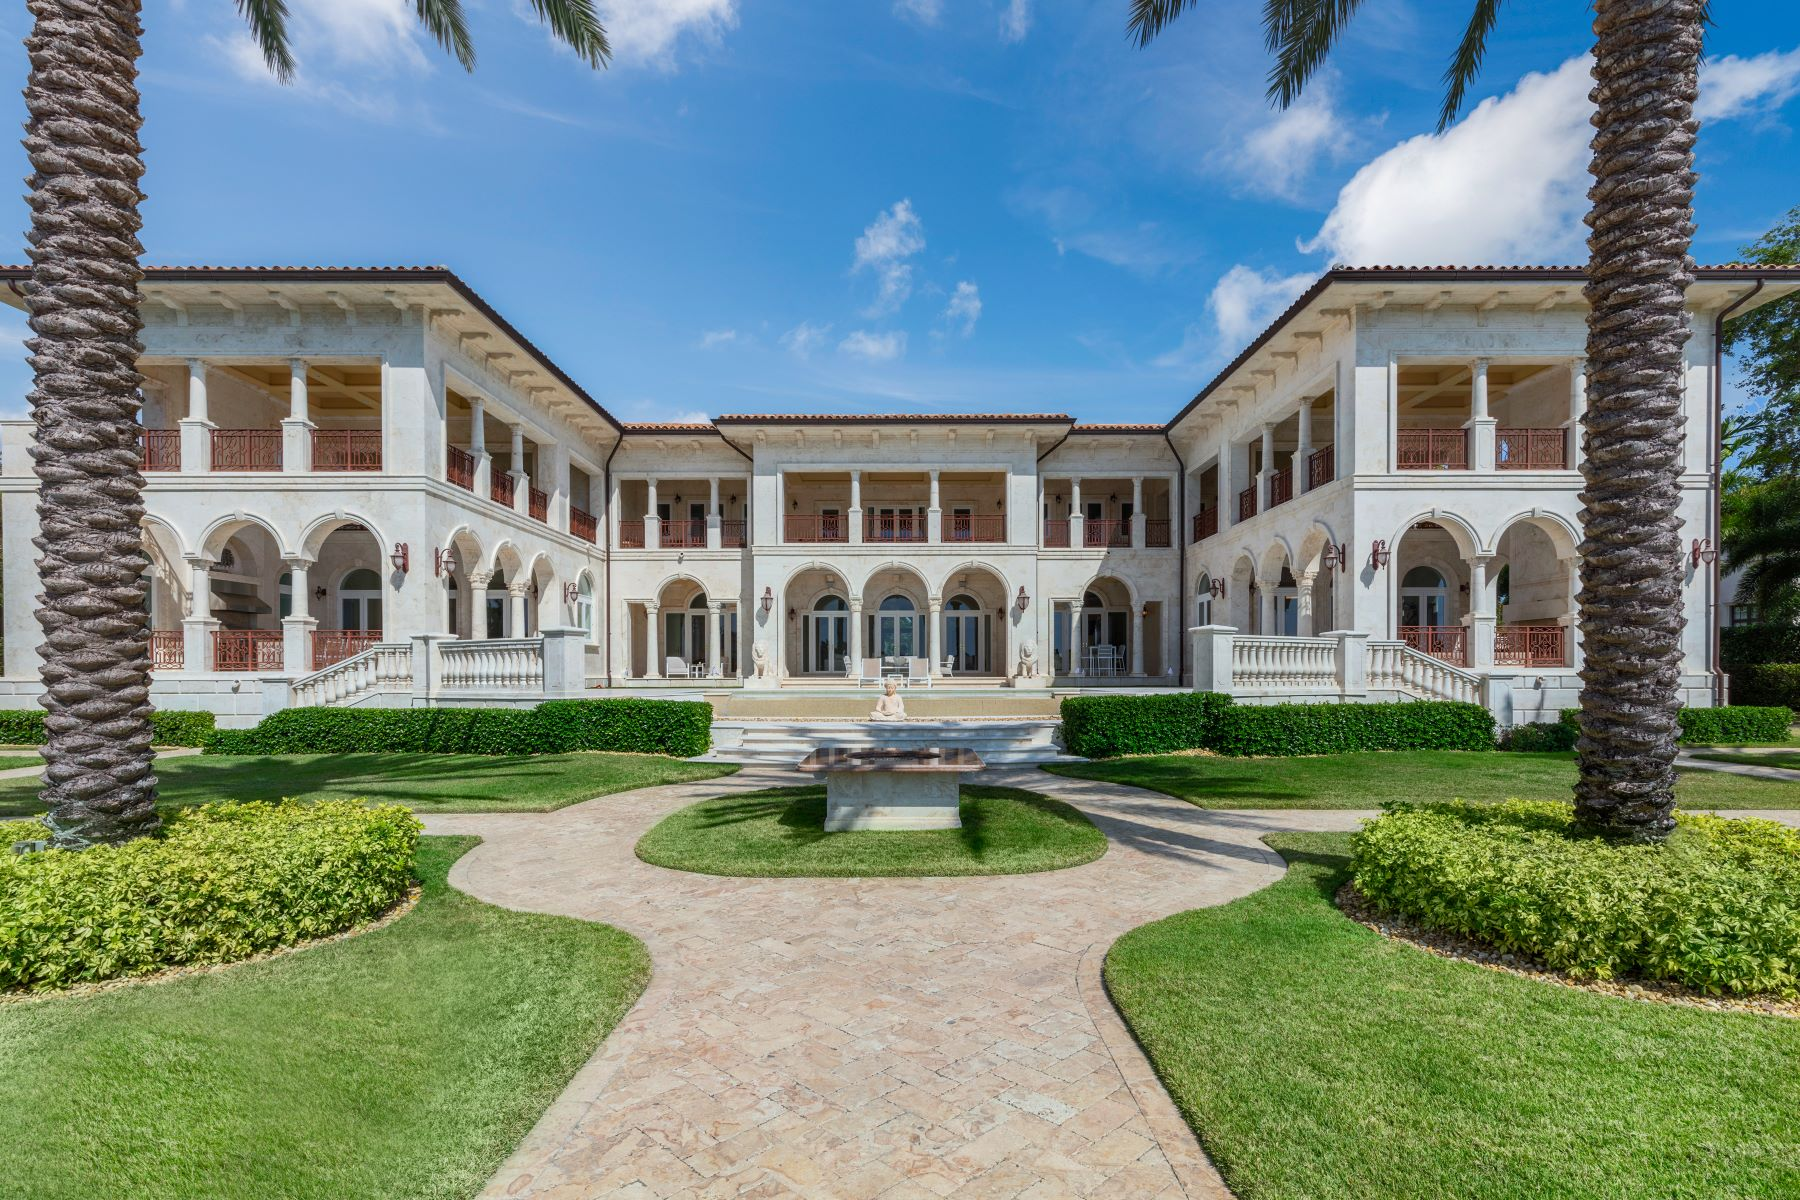 Single Family Homes for Sale at 530 Arvida Pkwy Coral Gables, Florida 33156 United States